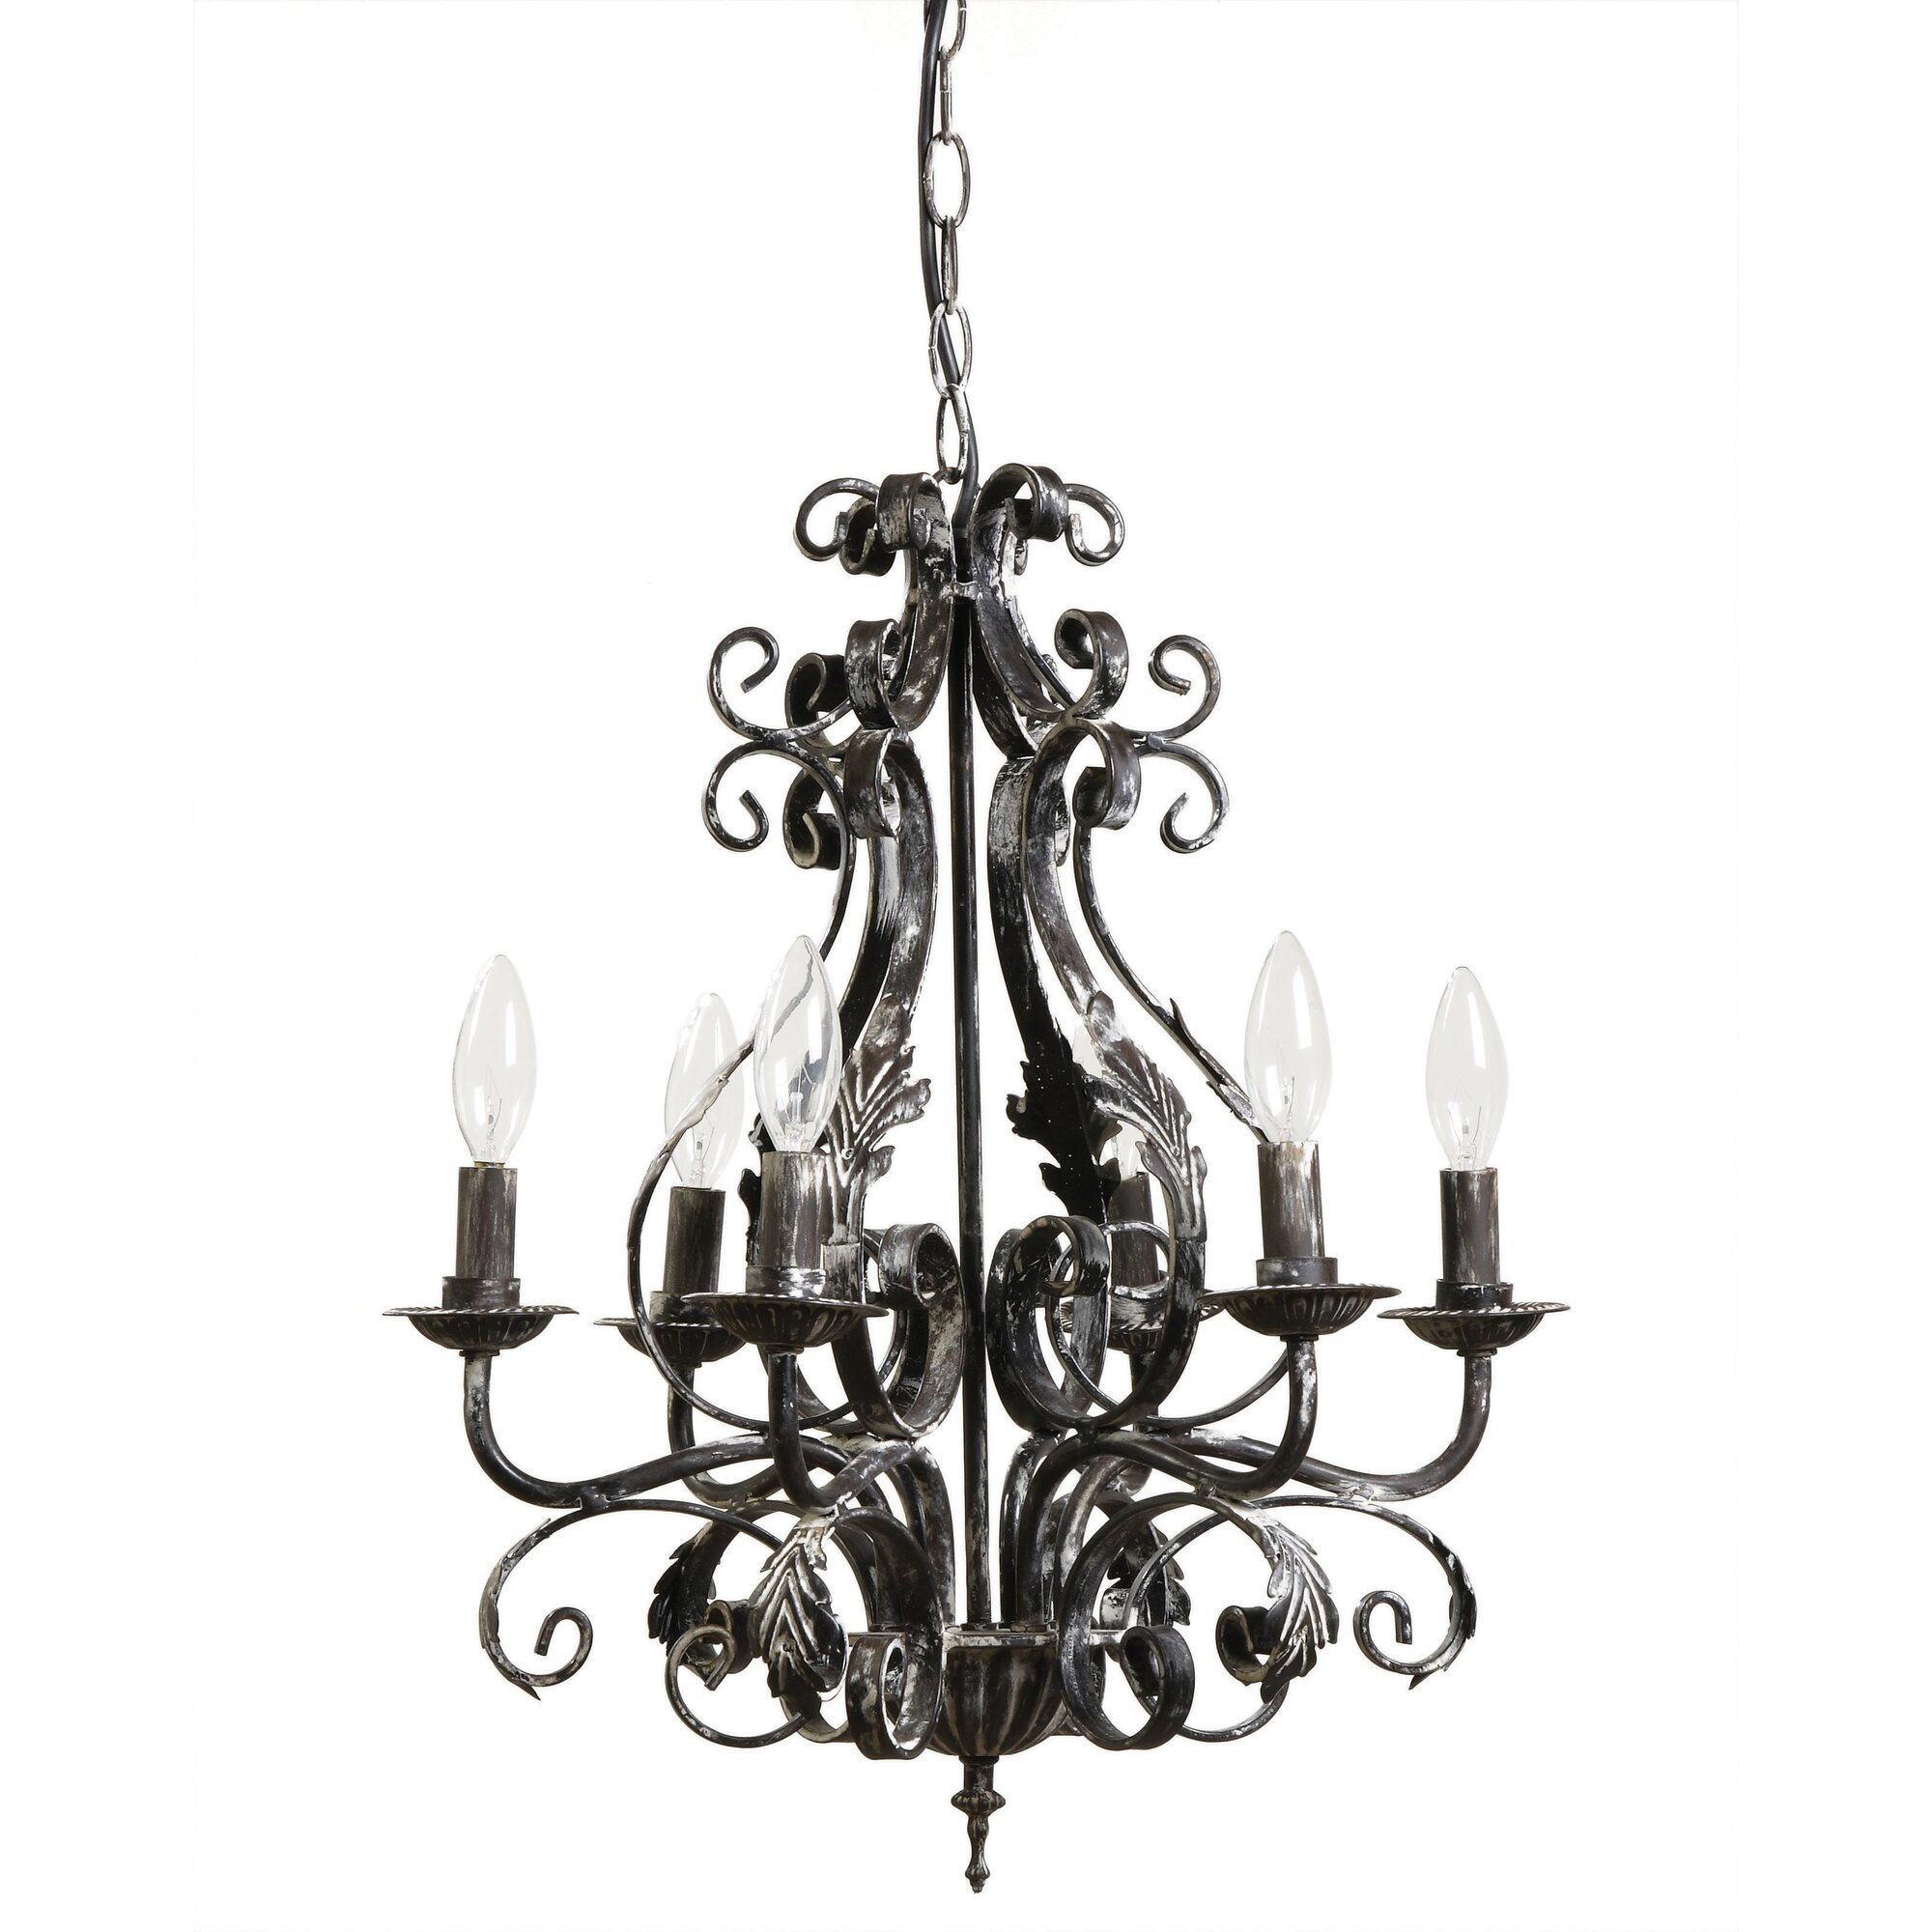 Creative co op lighting - Haven 6 Light Candle Style Chandelier